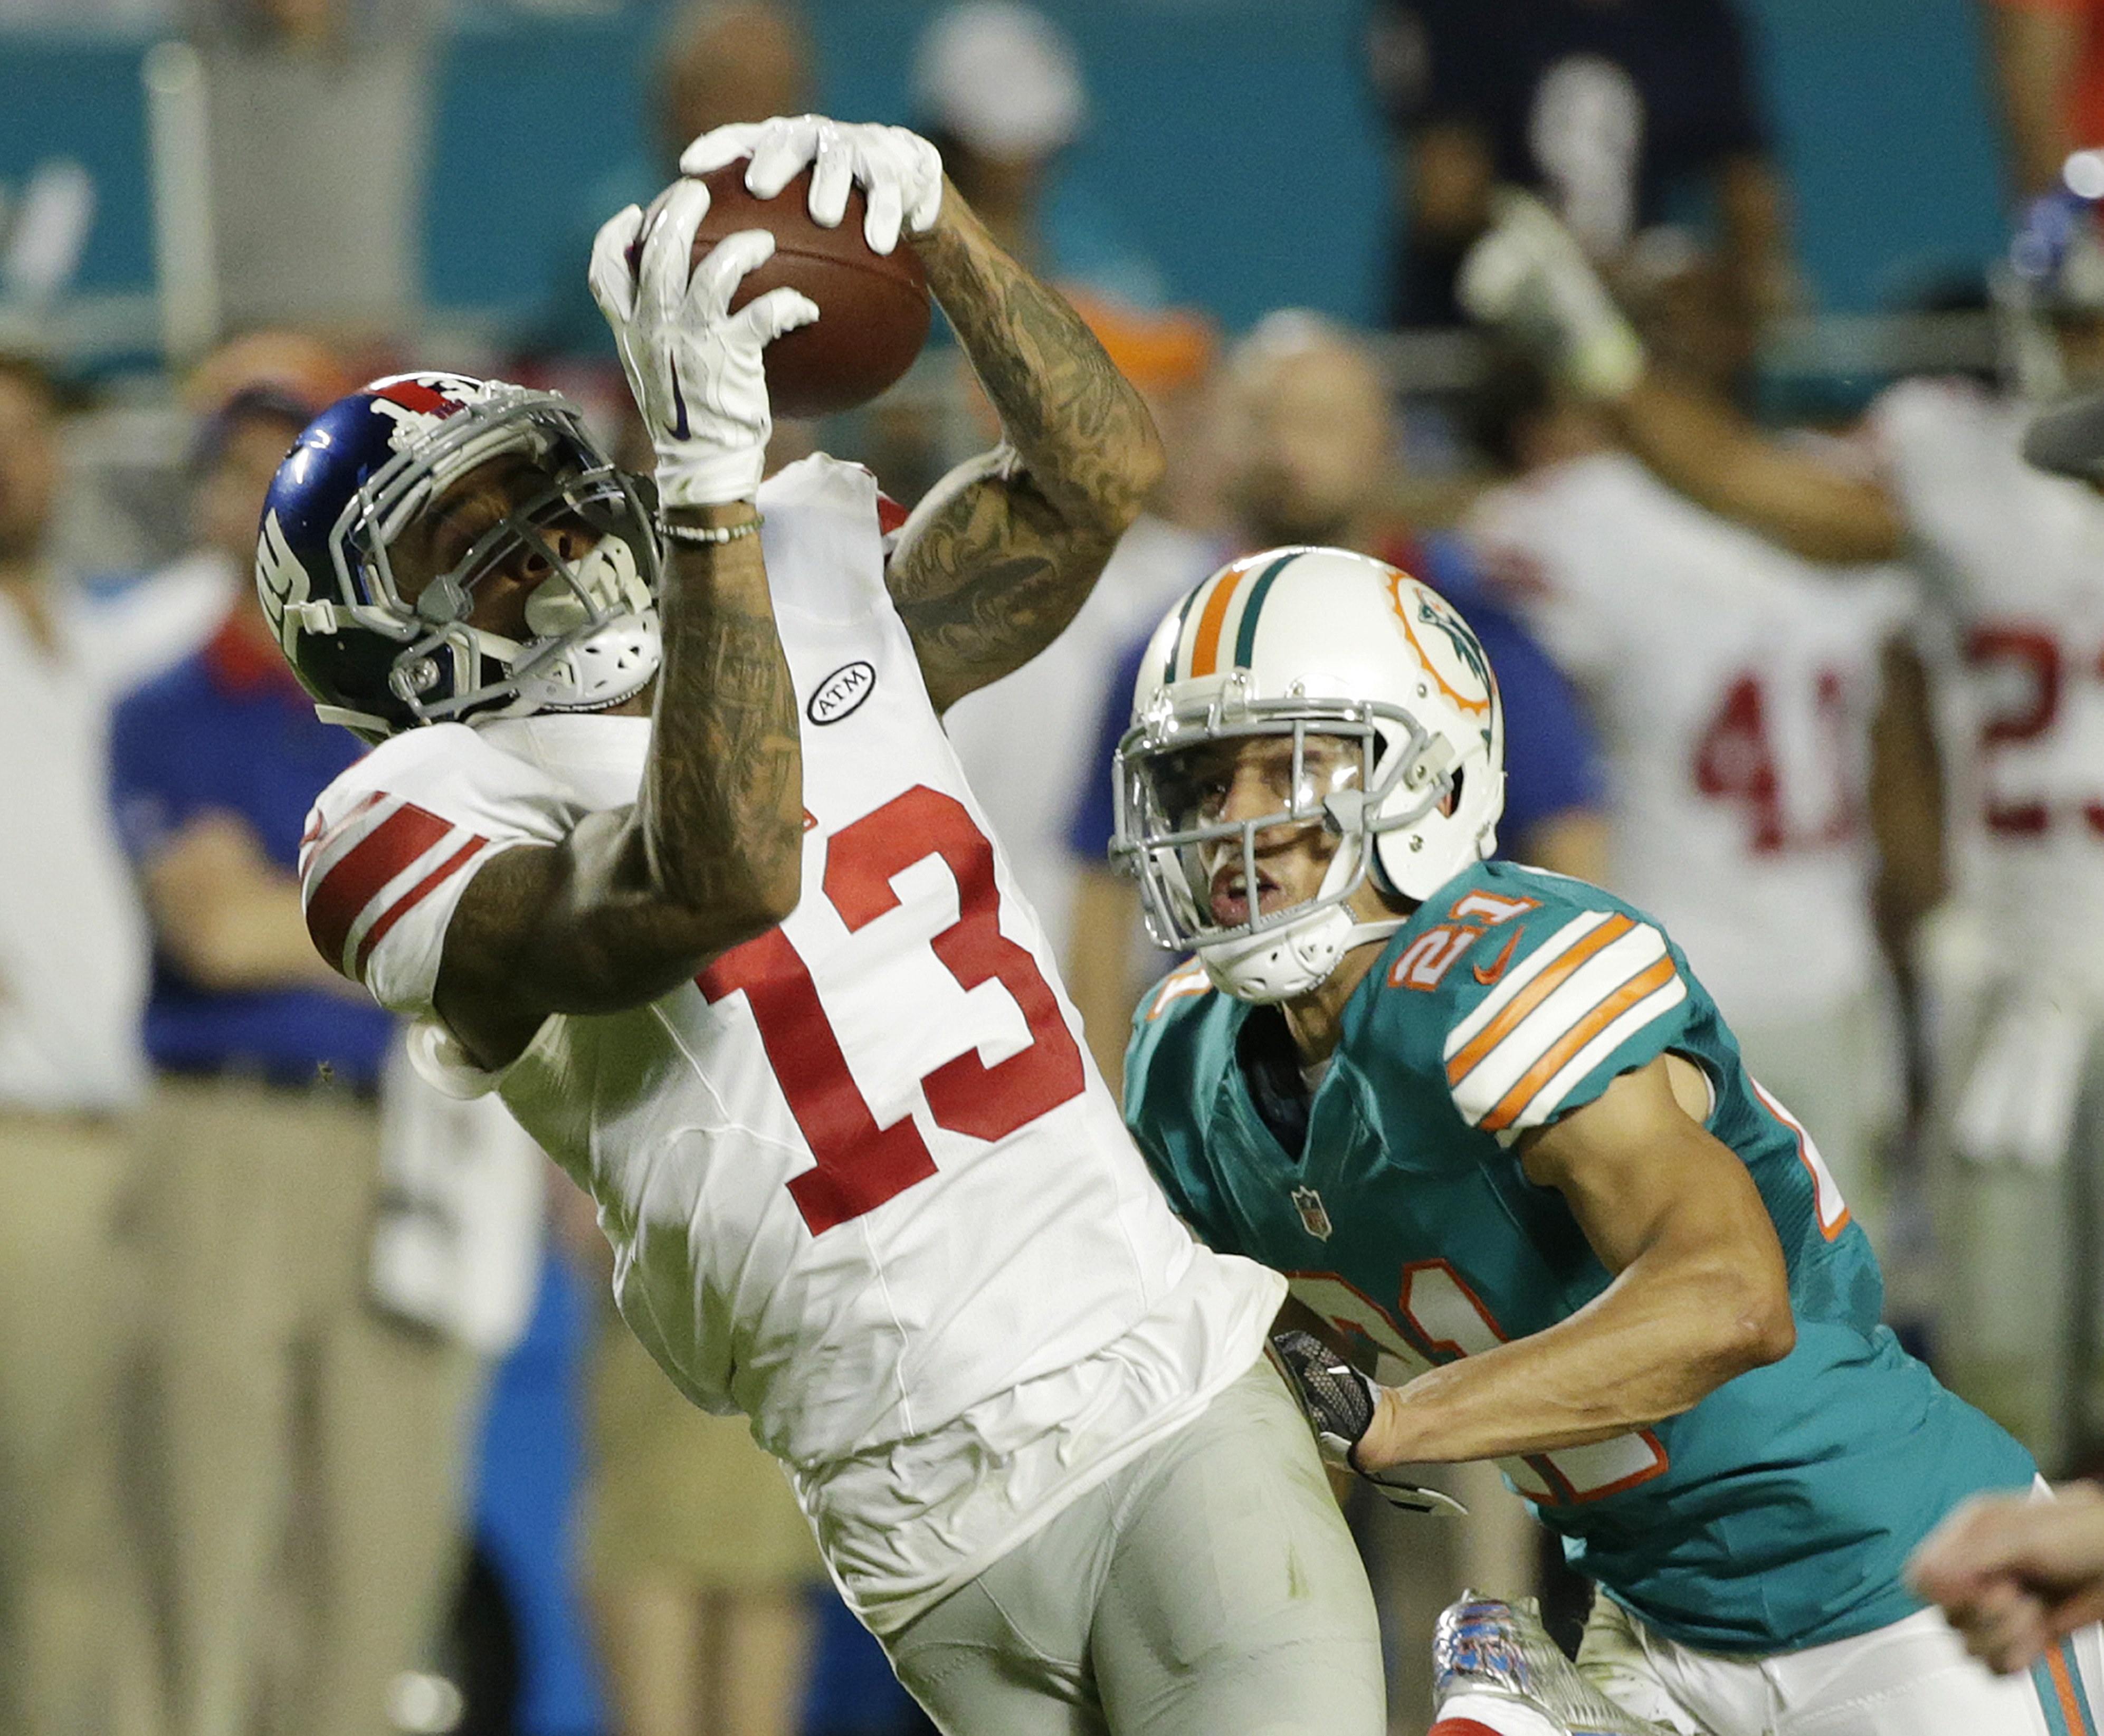 New York Giants wide receiver Odell Beckham (13) makes a catch as Miami Dolphins cornerback Brent Grimes (21) defends, during the first half of an NFL football game, Monday, Dec. 14, 2015, in Miami Gardens, Fla.  (AP Photo/Wilfredo Lee)